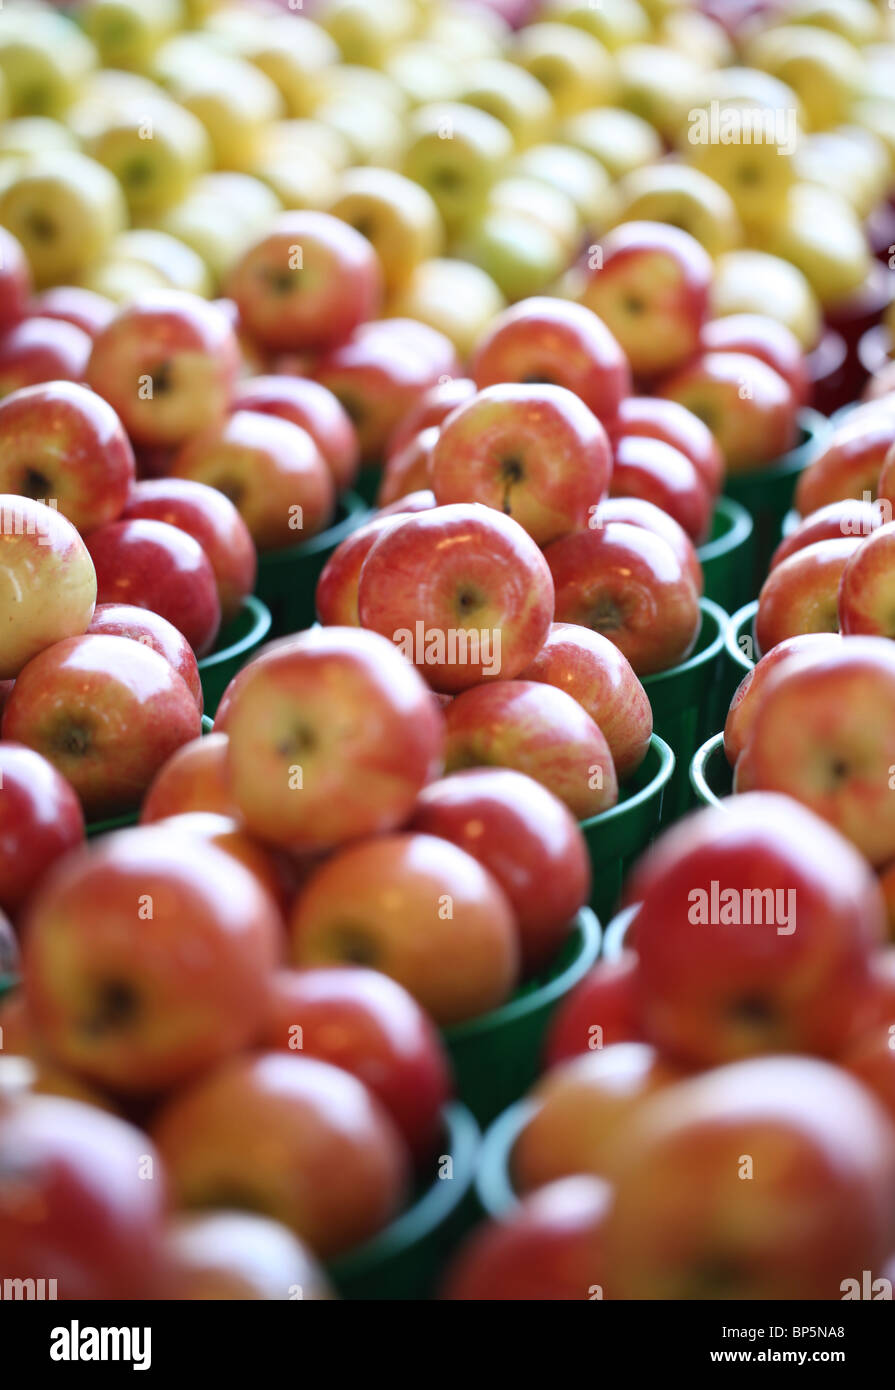 A collection of trays with fresh farmer's market red and yellow apples - Stock Image